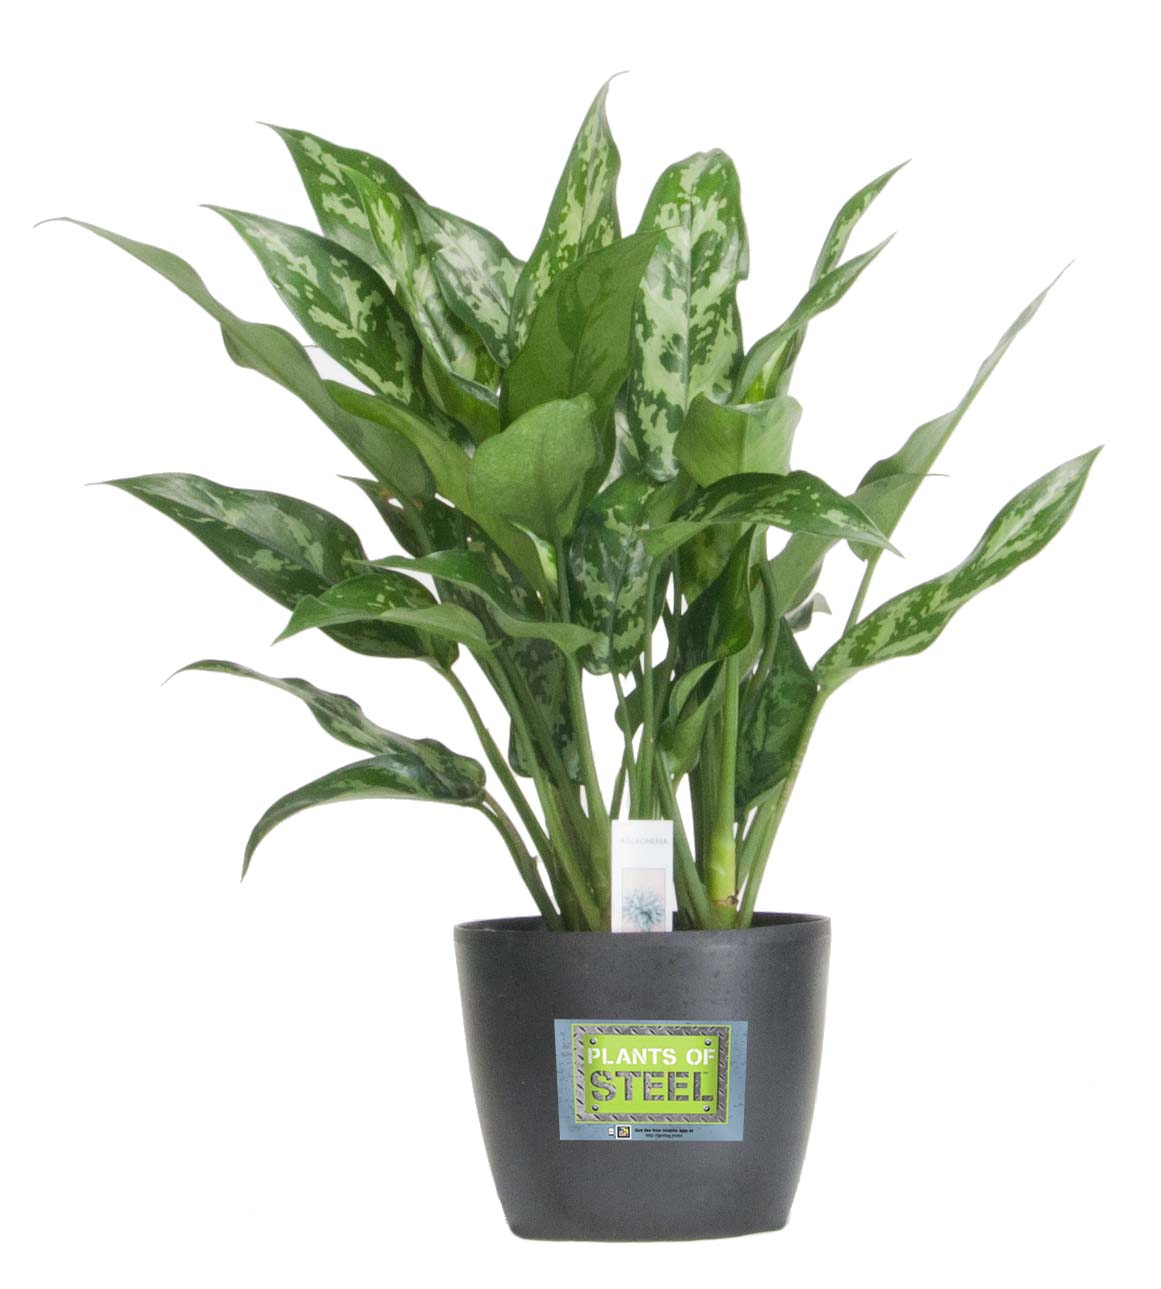 Costa Farms Introduces Durable Plants Of Steel Houseplant